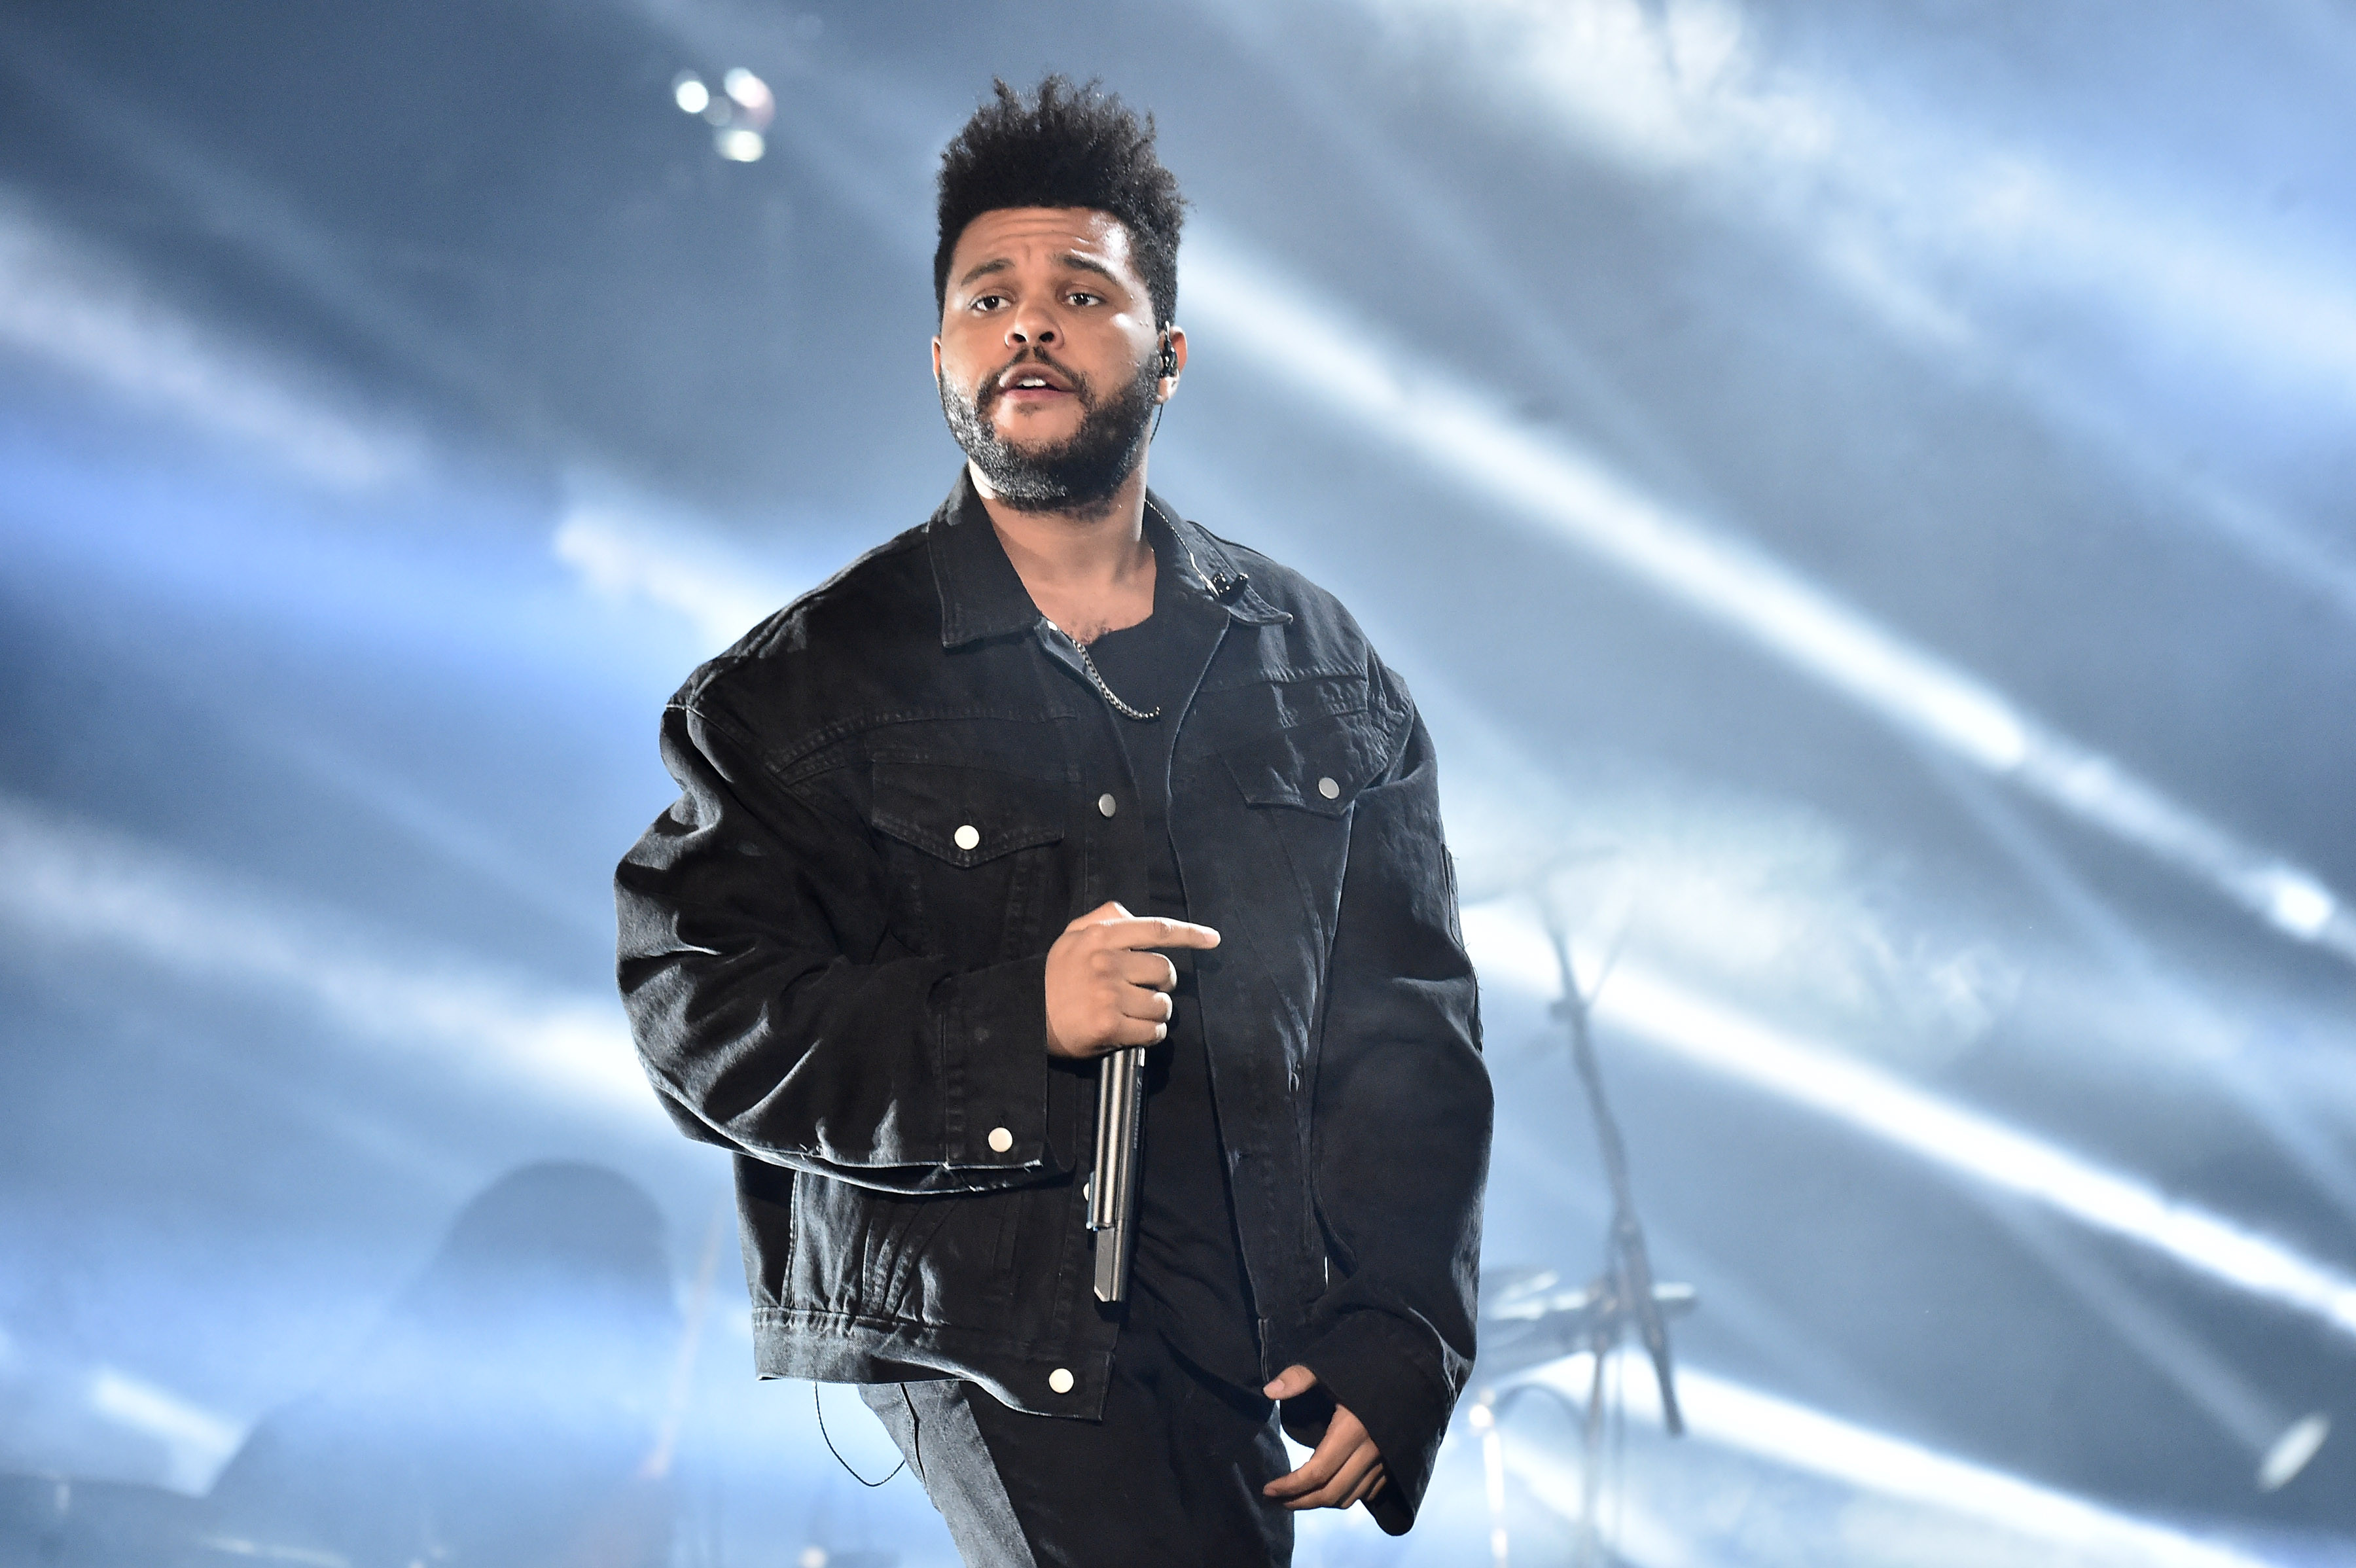 The Weeknd says his previous Grammy wins 'mean nothing' to him after nominations snub